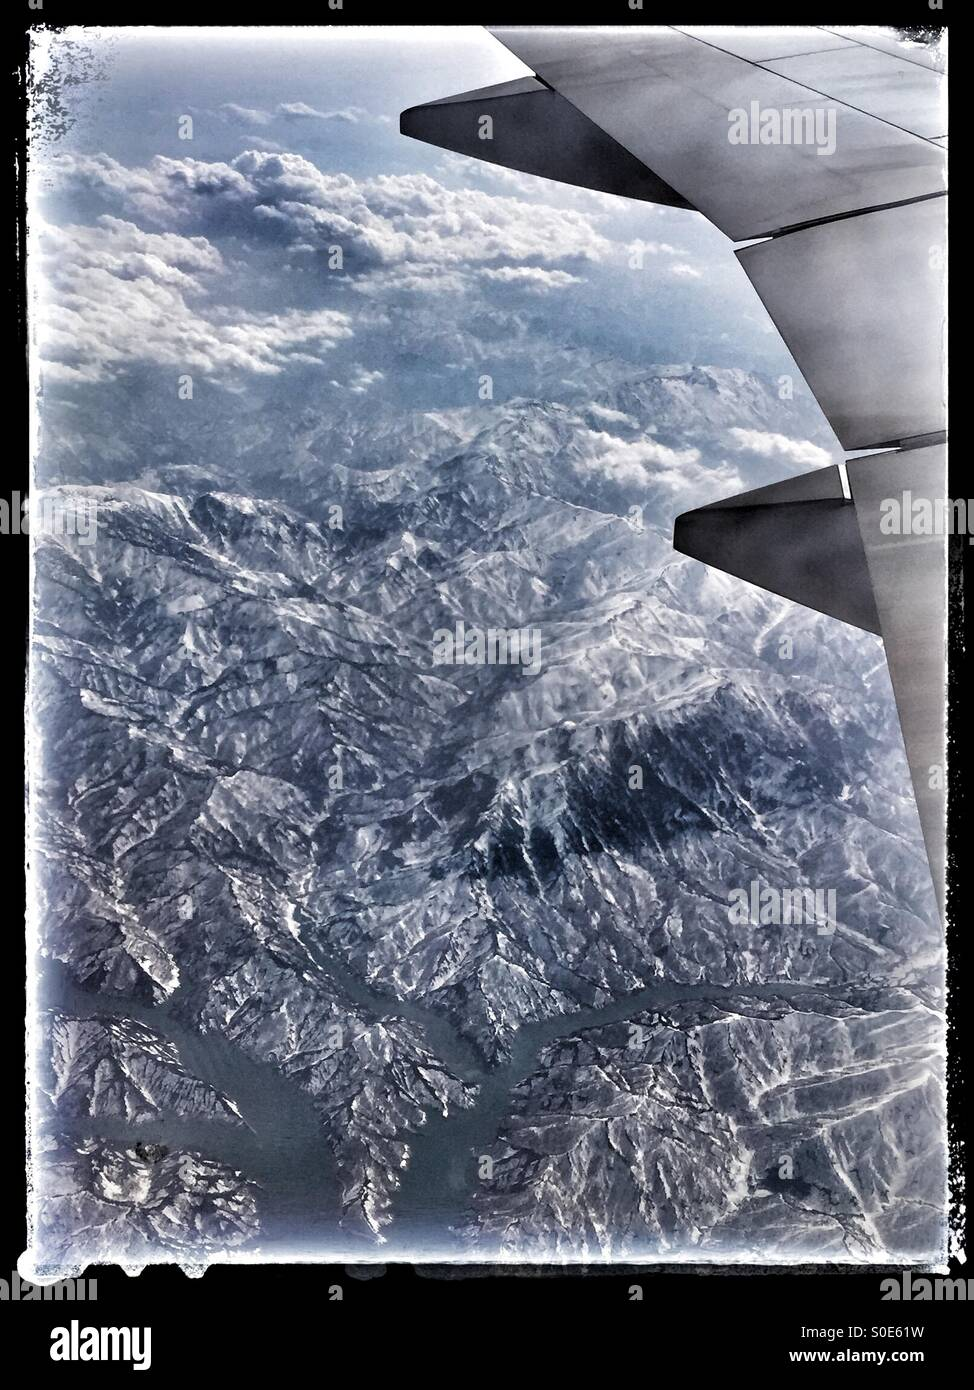 Aerial view of airplane wing, mountains, rivers and clouds as seen from window of airplane. Black vintage frame.Stock Photo